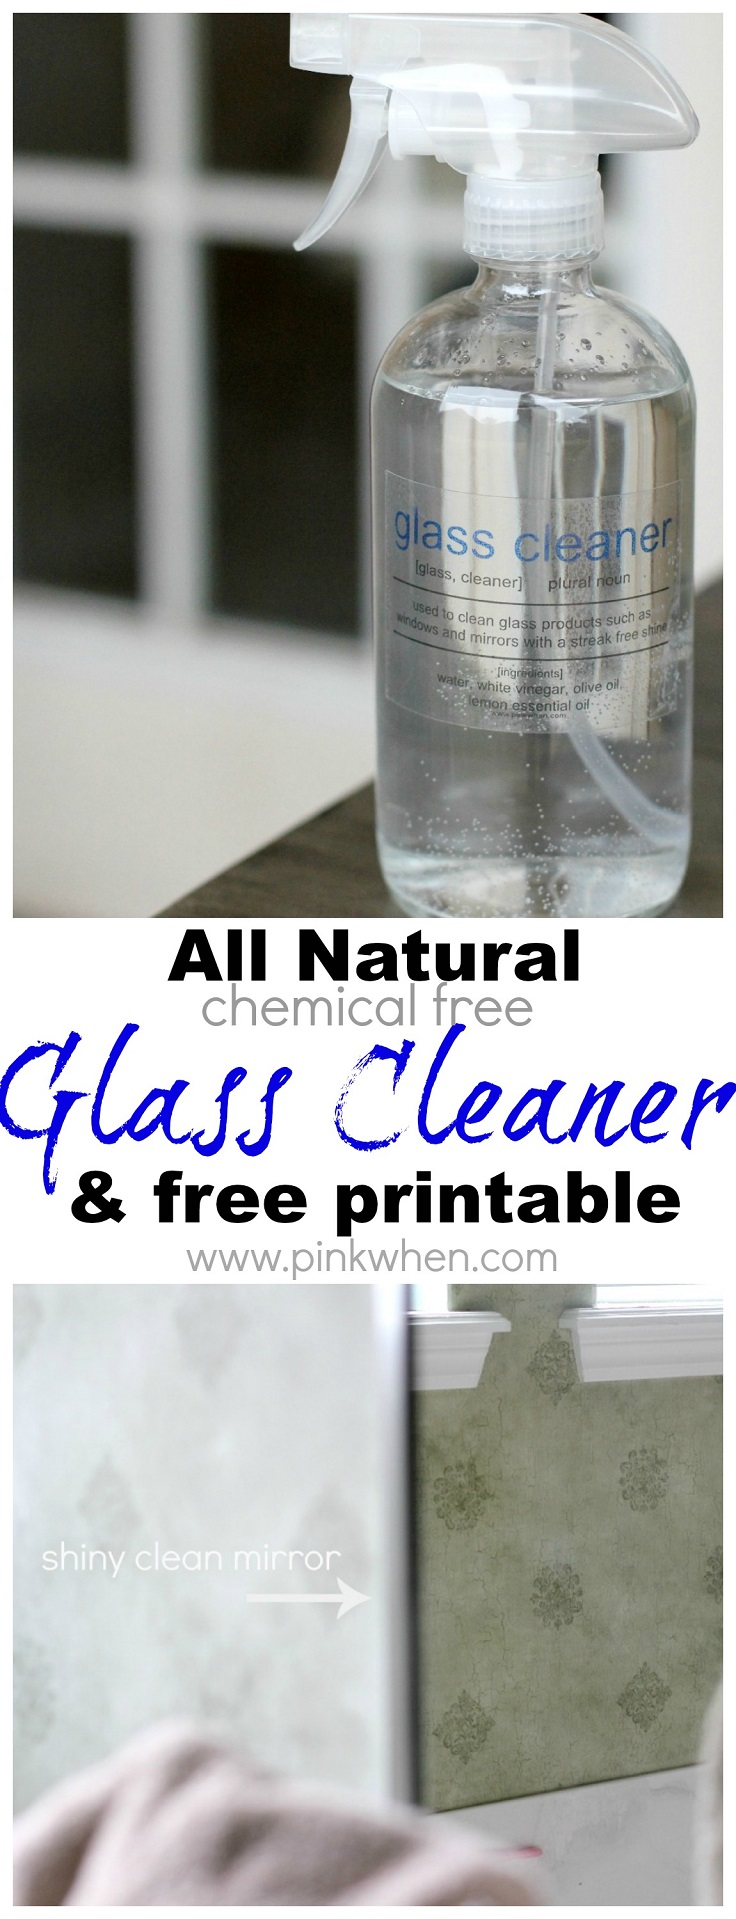 diy-all-natural-glass-cleaner